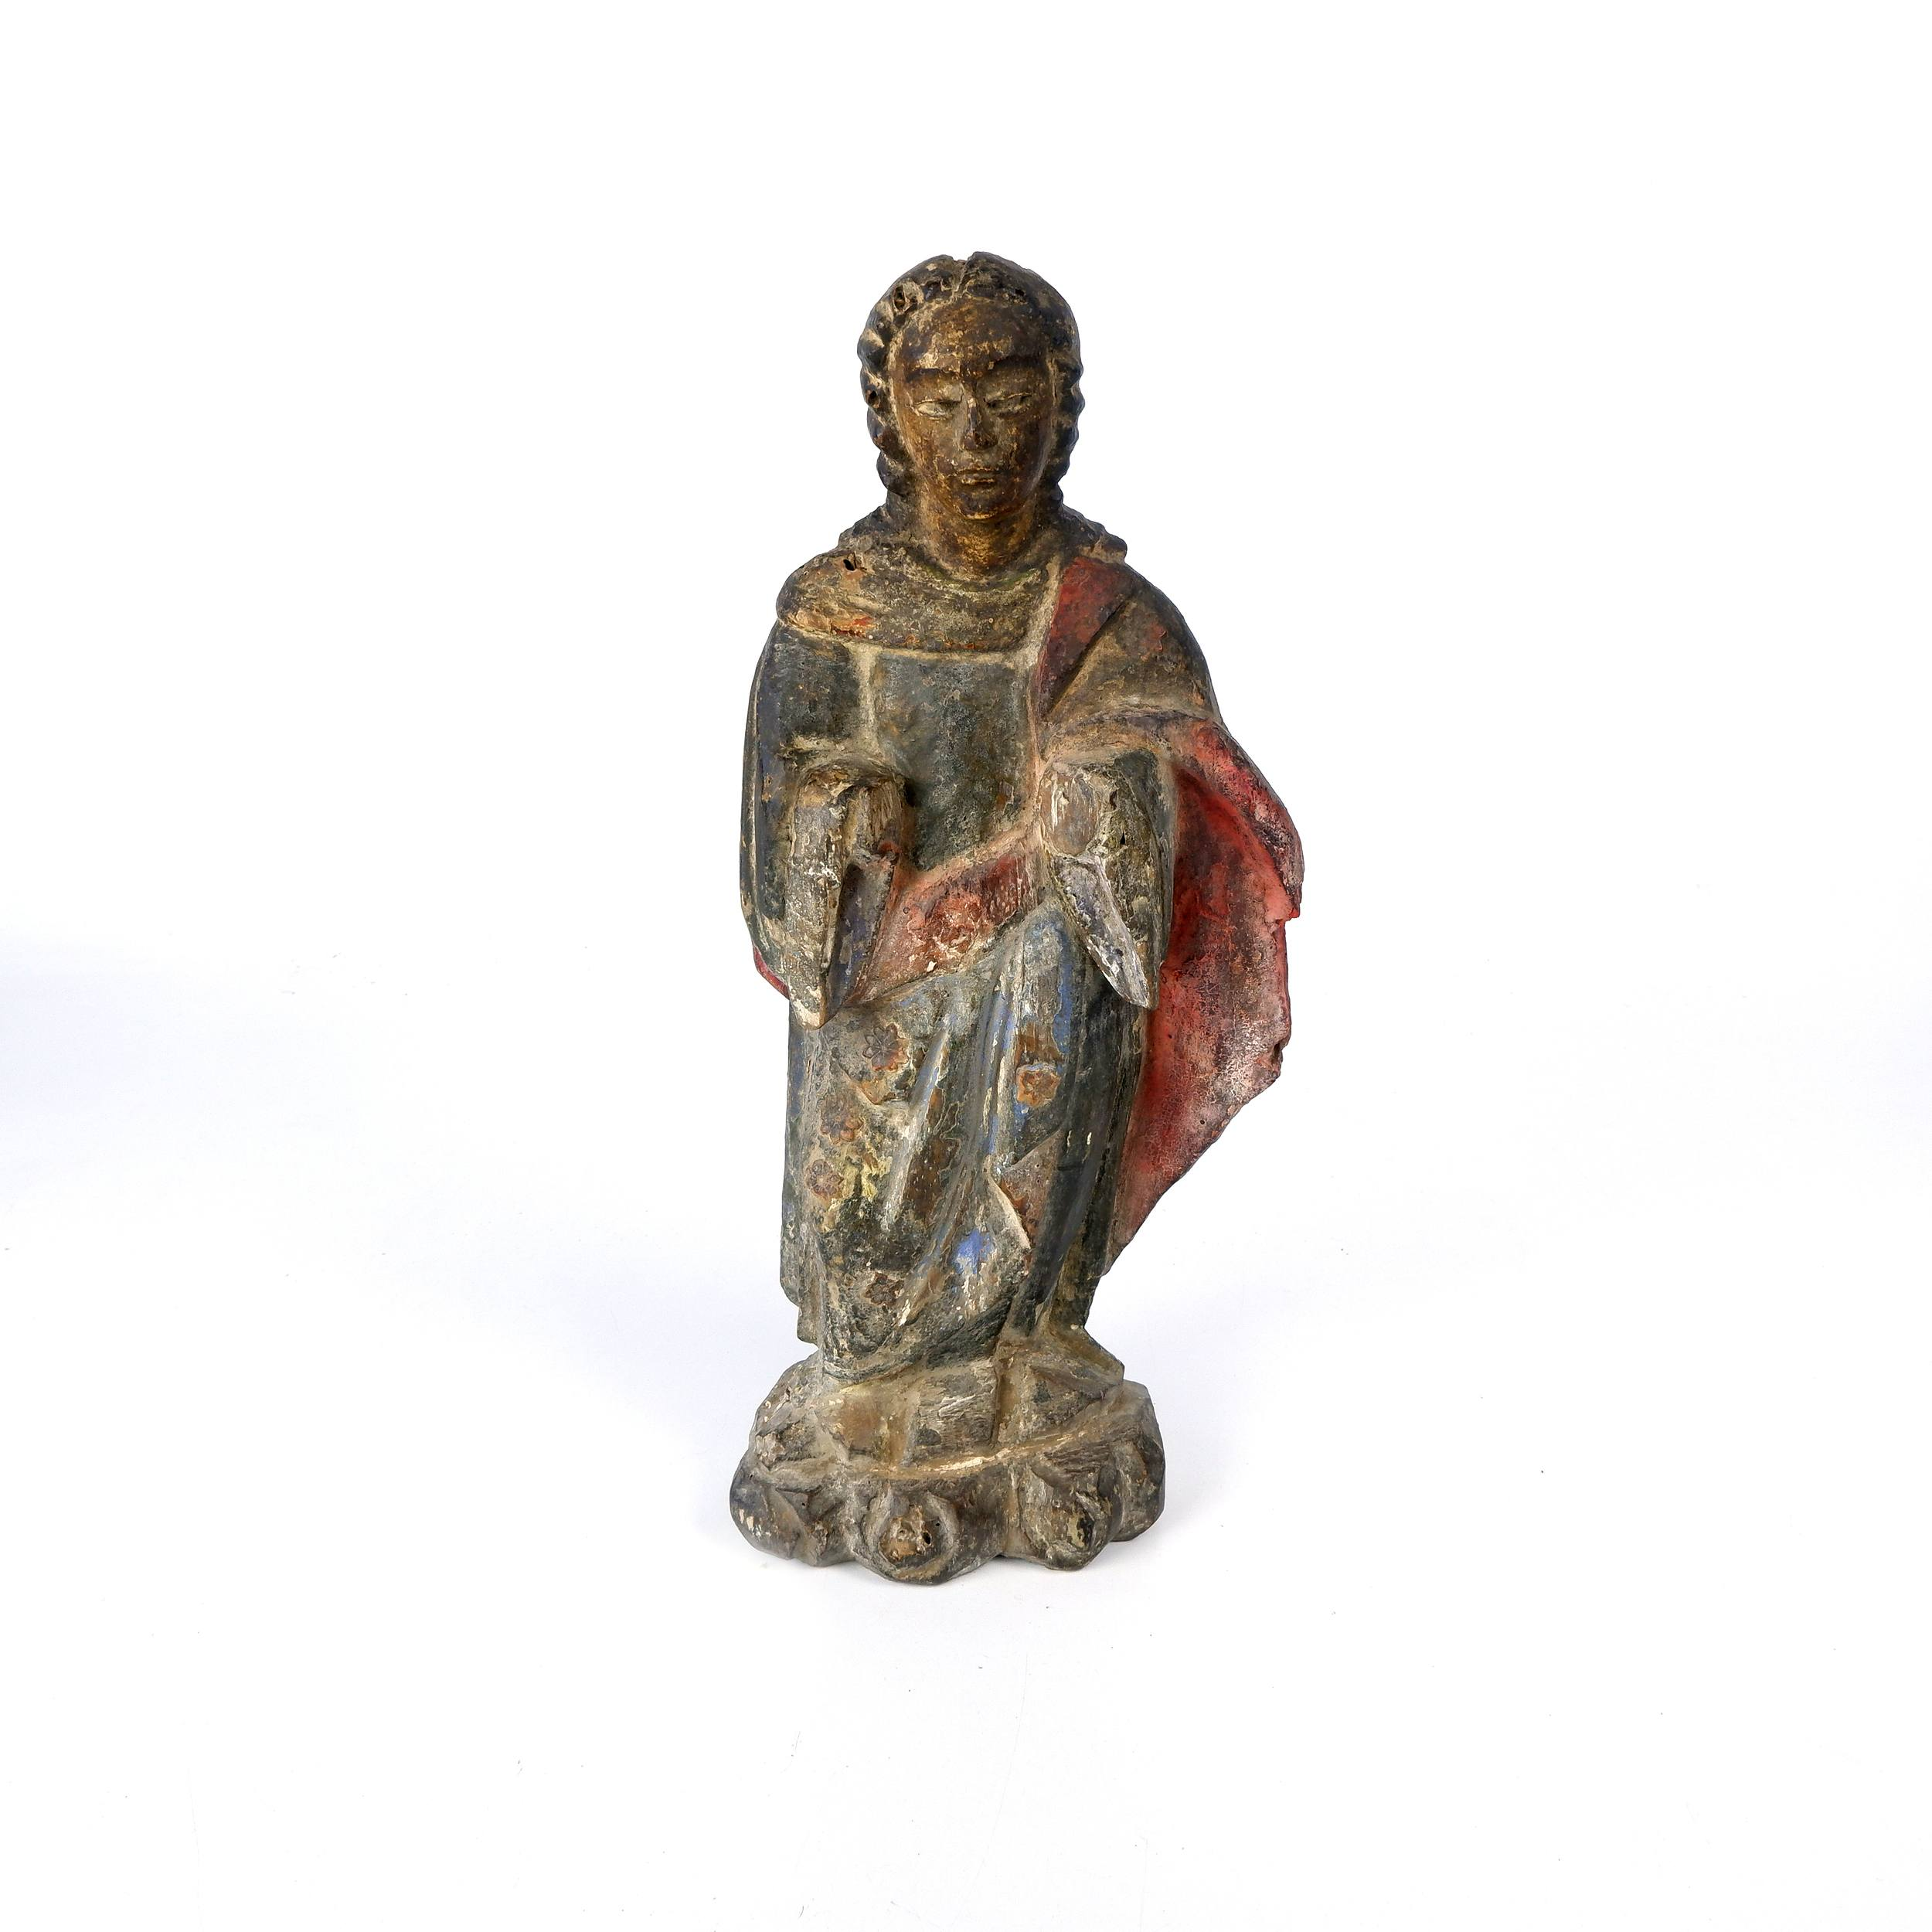 'Antique Philippino Hand Carved and Painted Santos Figure of the Virgin Mary, Late 19th to Early 20th Century'